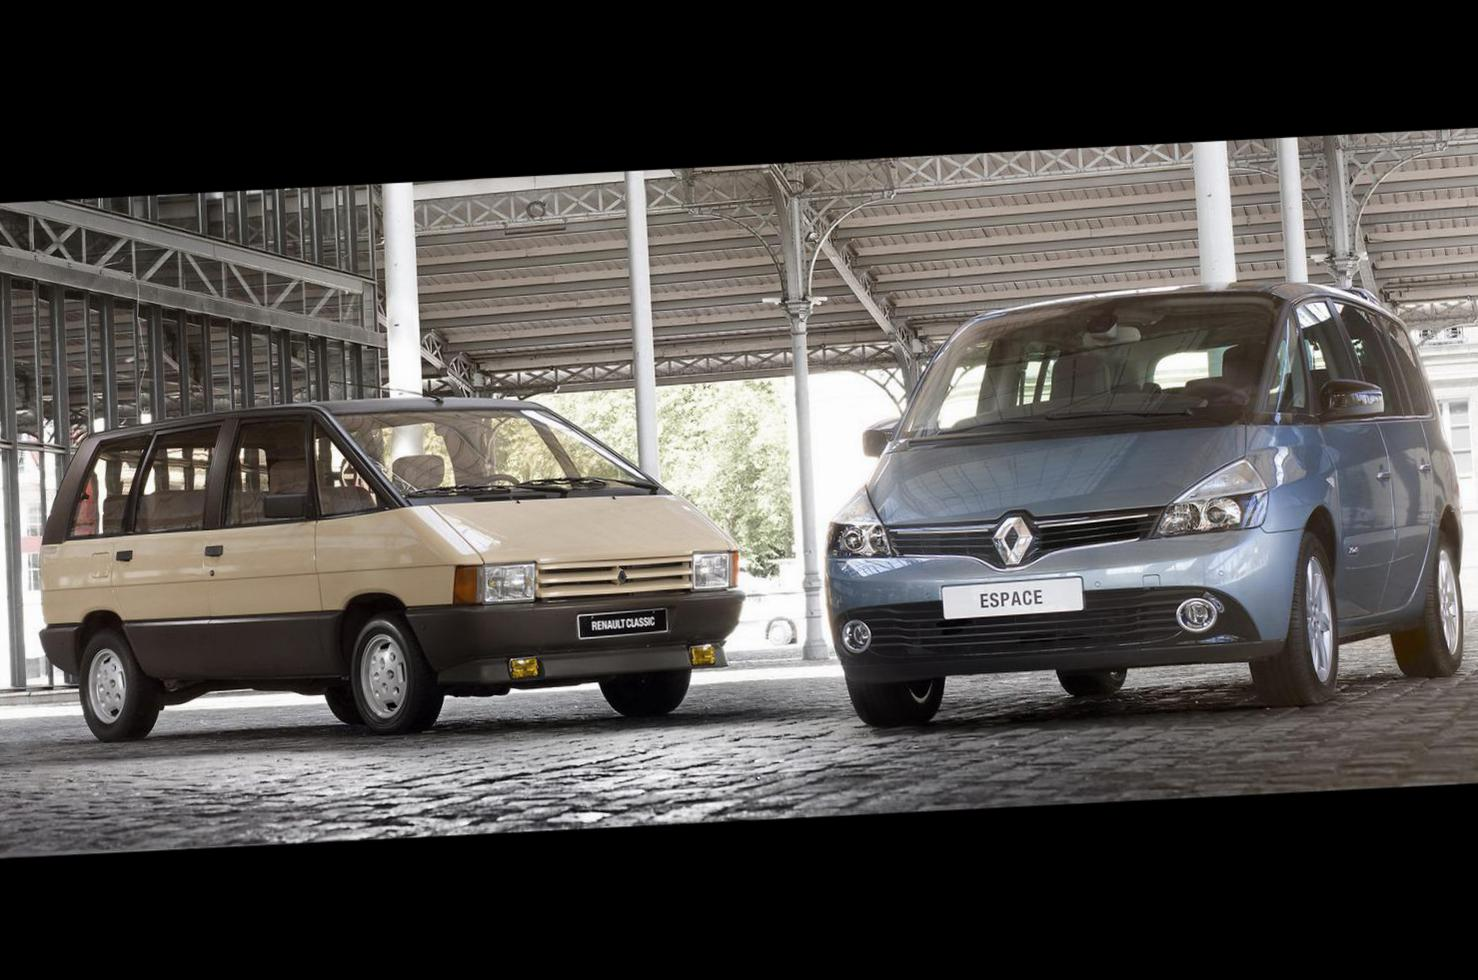 Renault Espace approved 2011